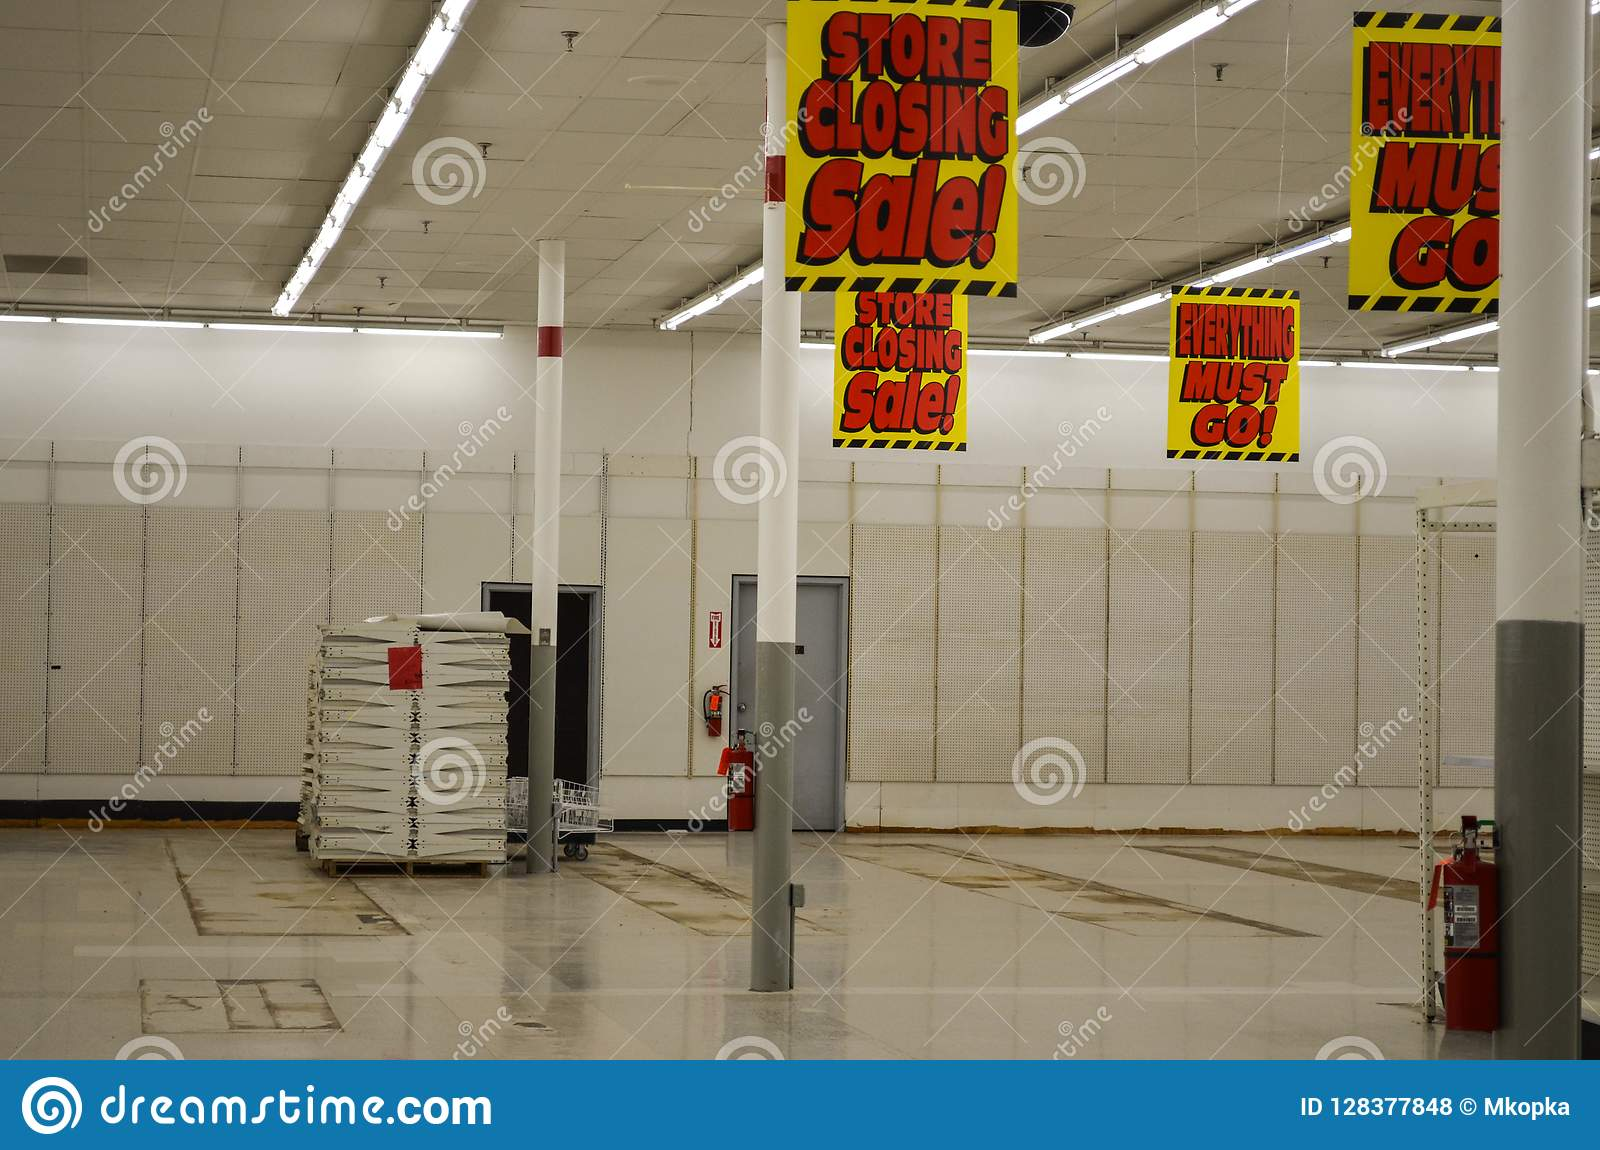 Interior Of A Kmart Store, During The Last Day Of A Going